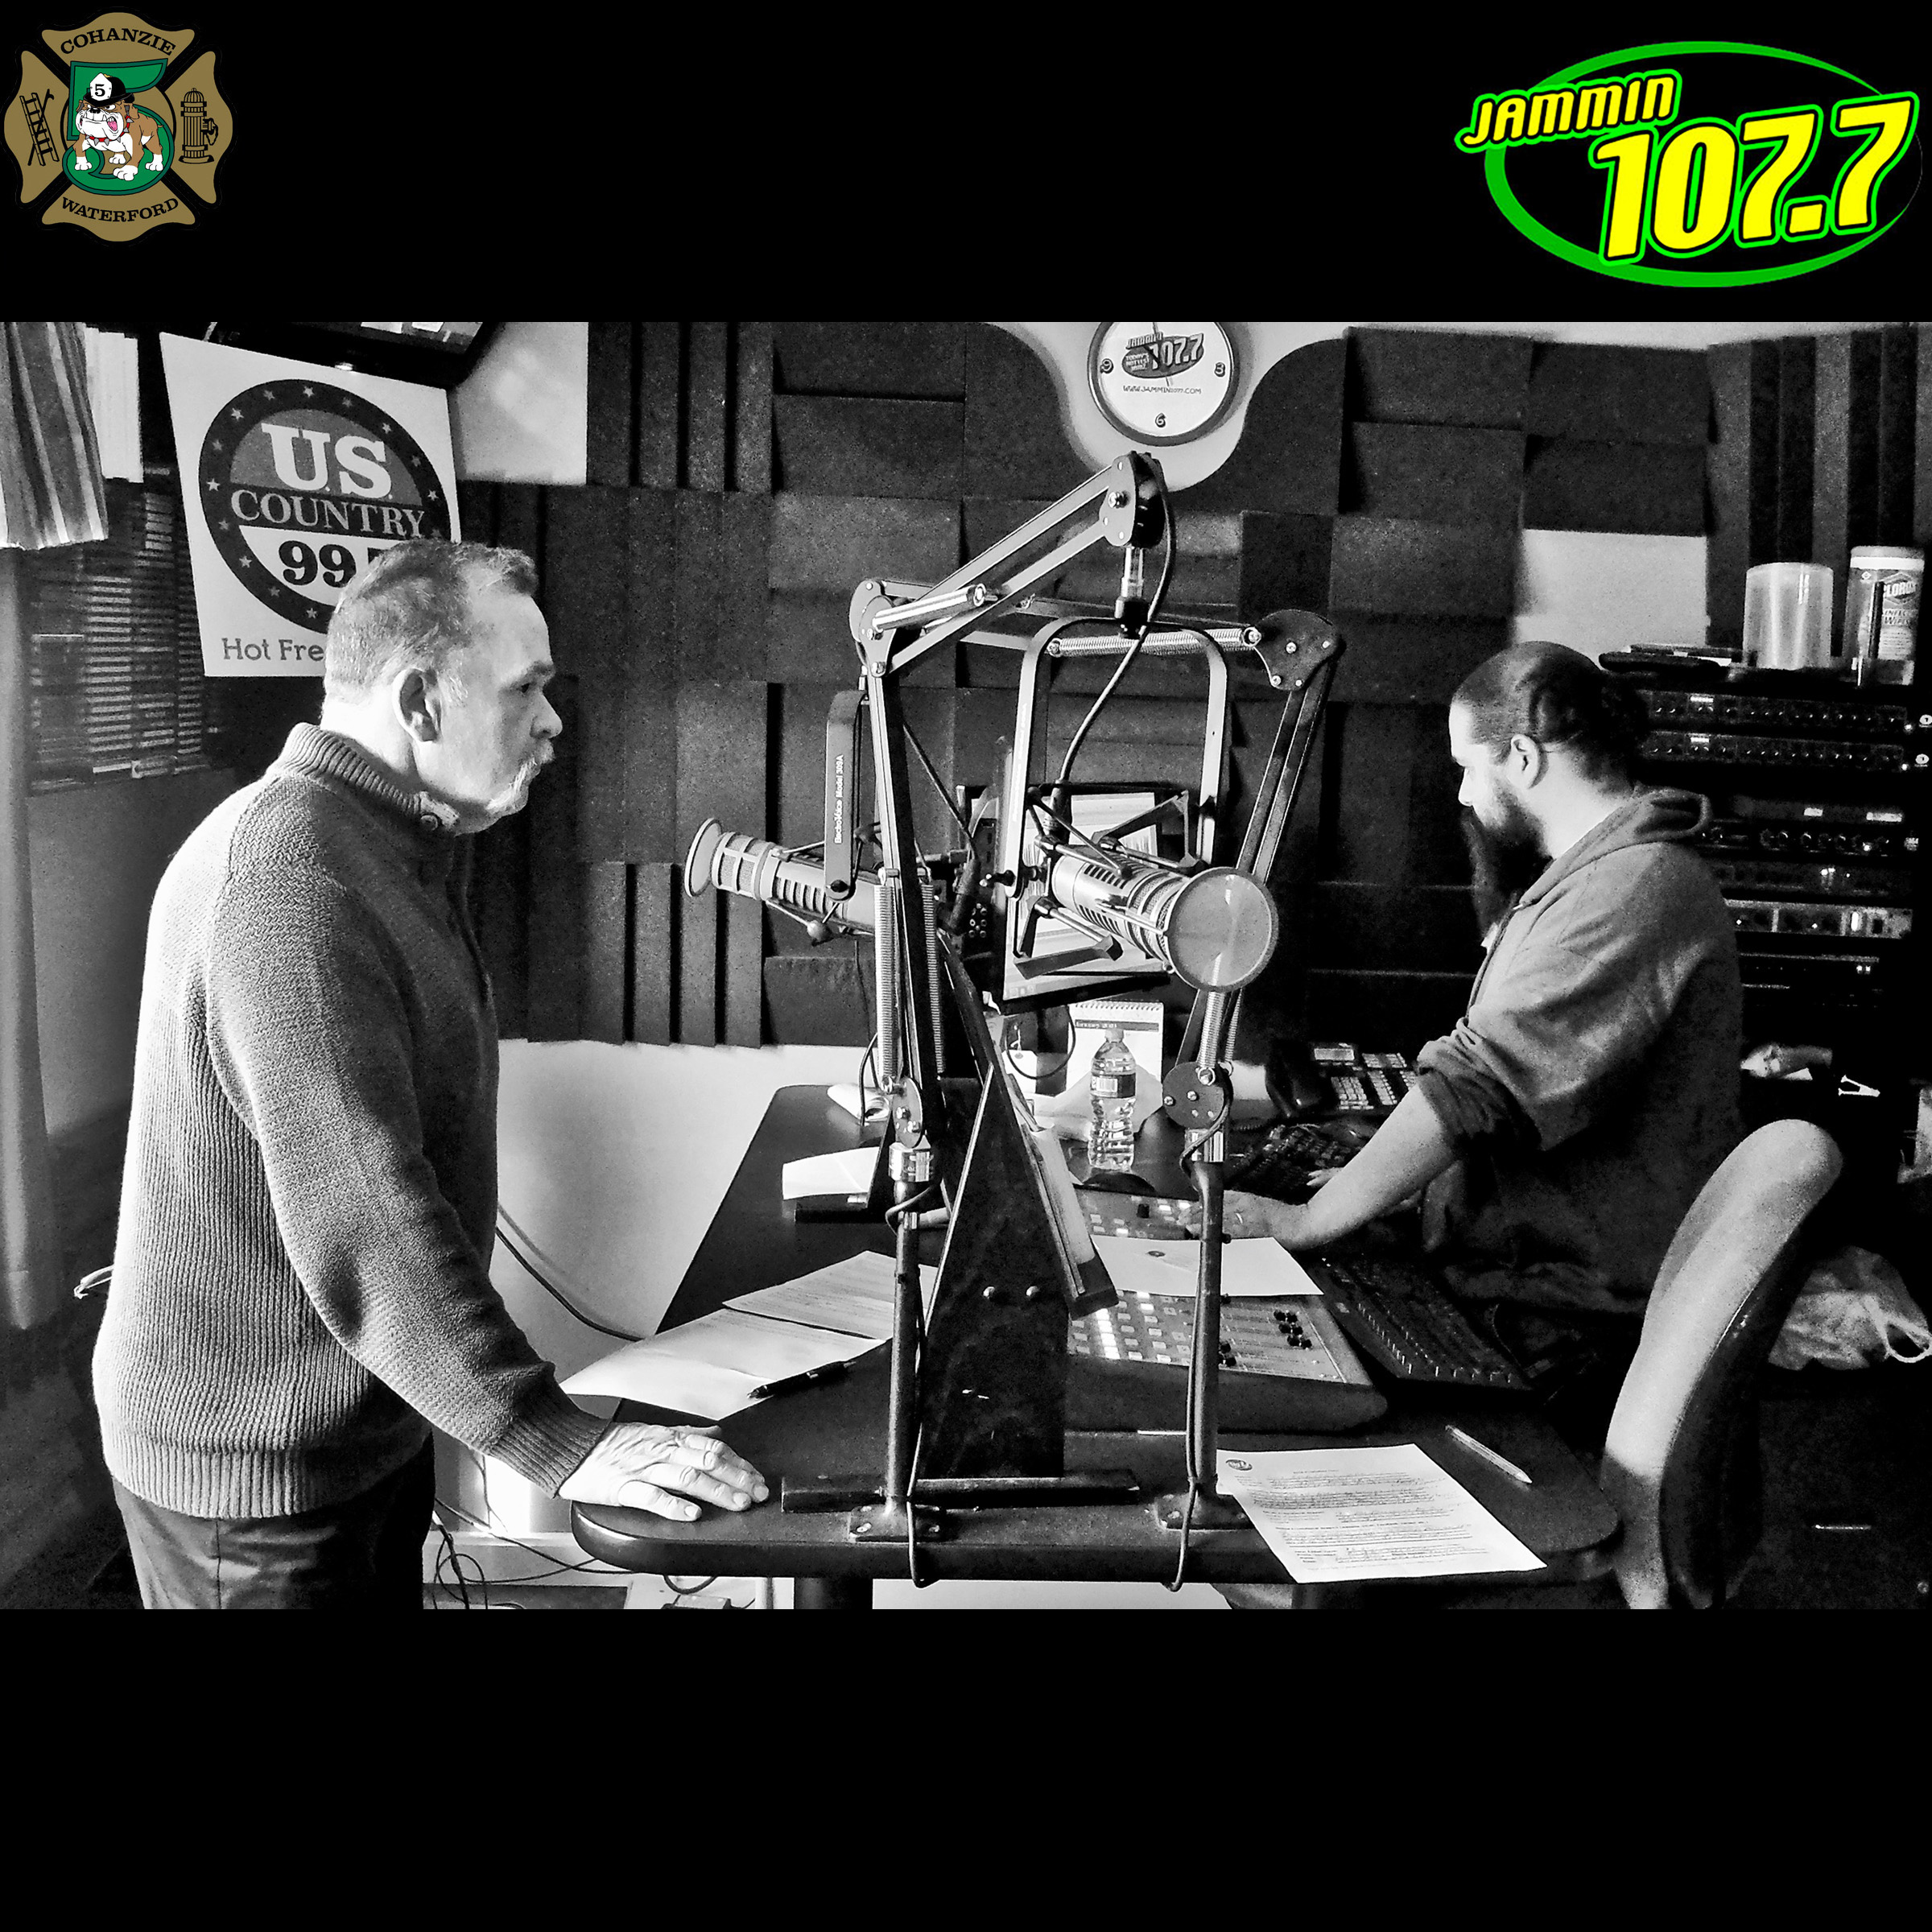 20190111_Waterford_Cohanzie_Chief_Branche_Radio_Booth_x0010SQ_107.jpg